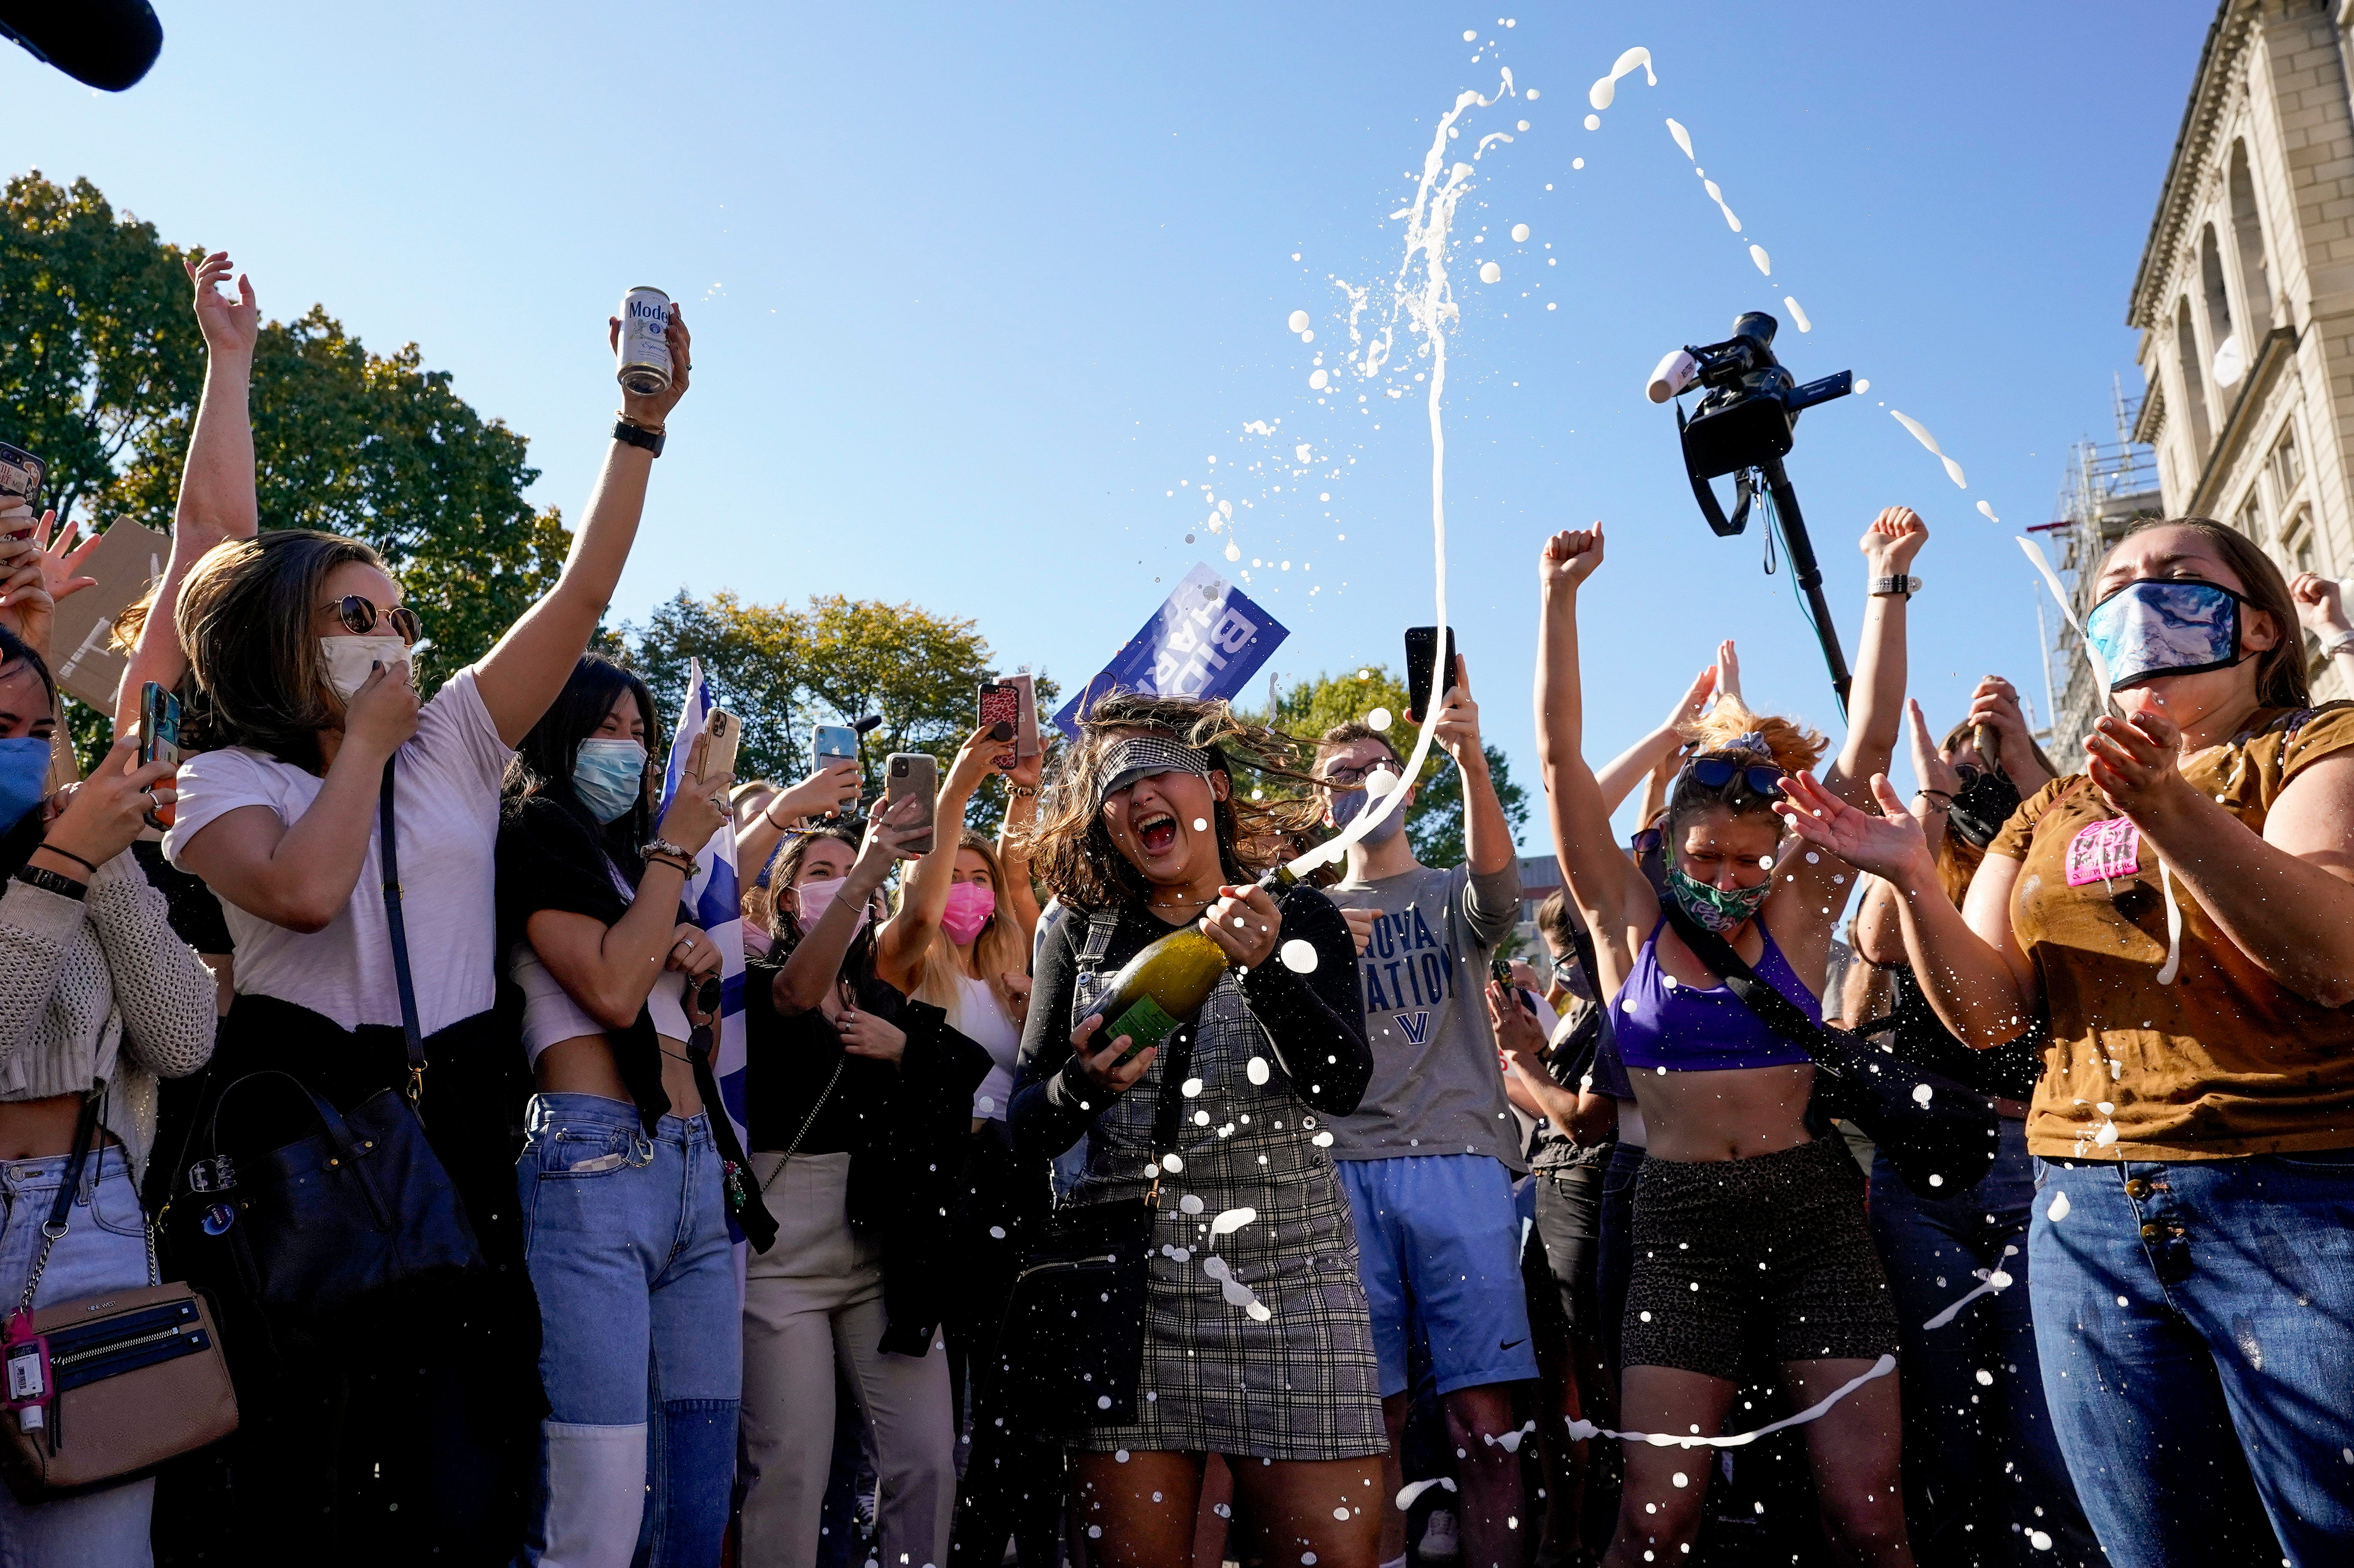 Amanda Madden sprays champagne as people celebrate at Black Lives Matter Plaza in Washington, D.C., after CNN called the race.